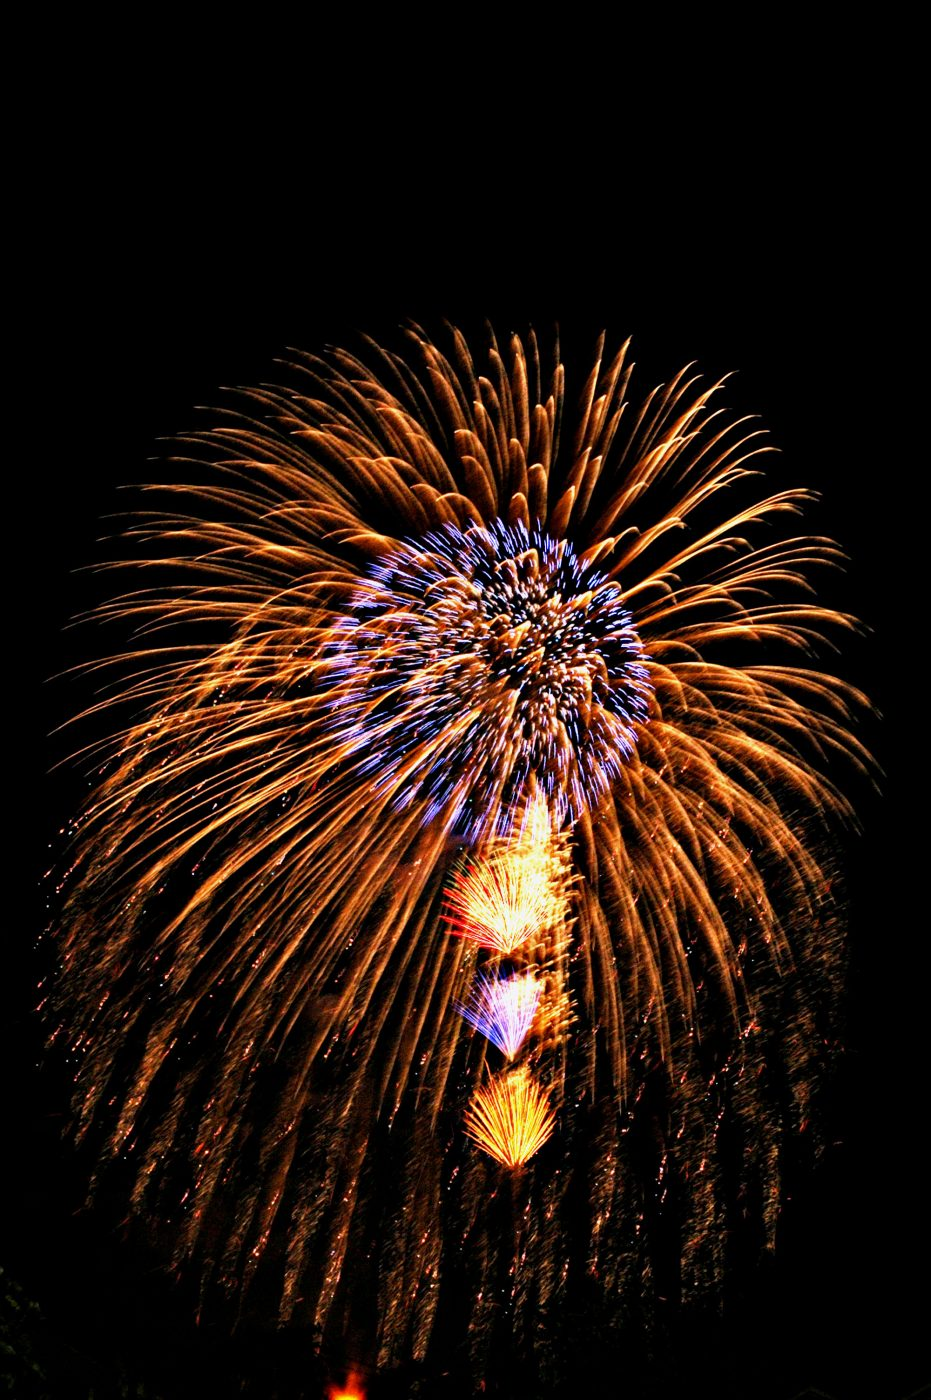 firework1-1443840, freeimages, by Saifon Narongrat